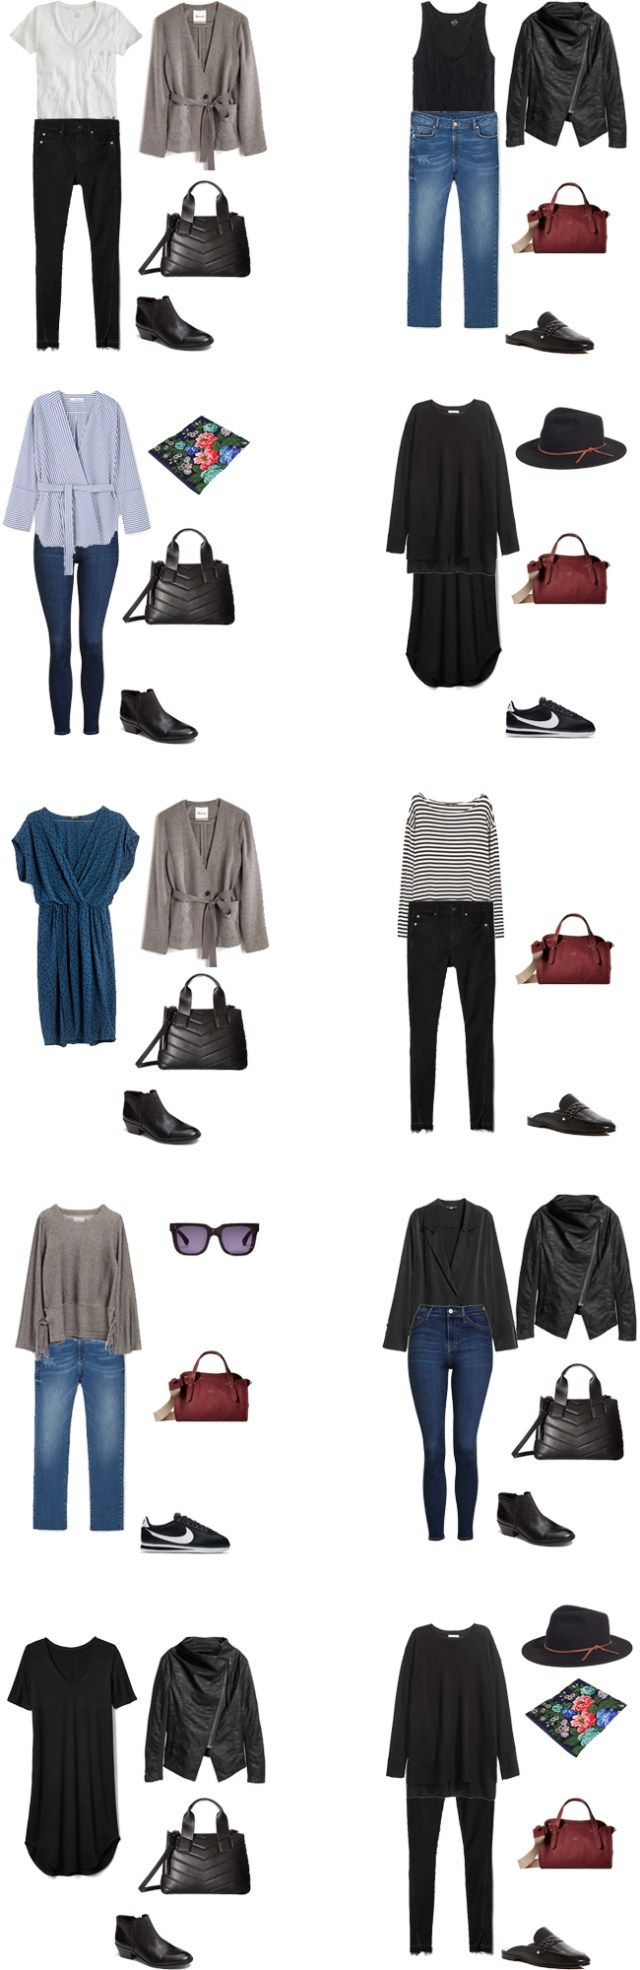 Packing List: 3 weeks in Venice, Italy, in Spring 2017- Outfit Options 2. livelovesara